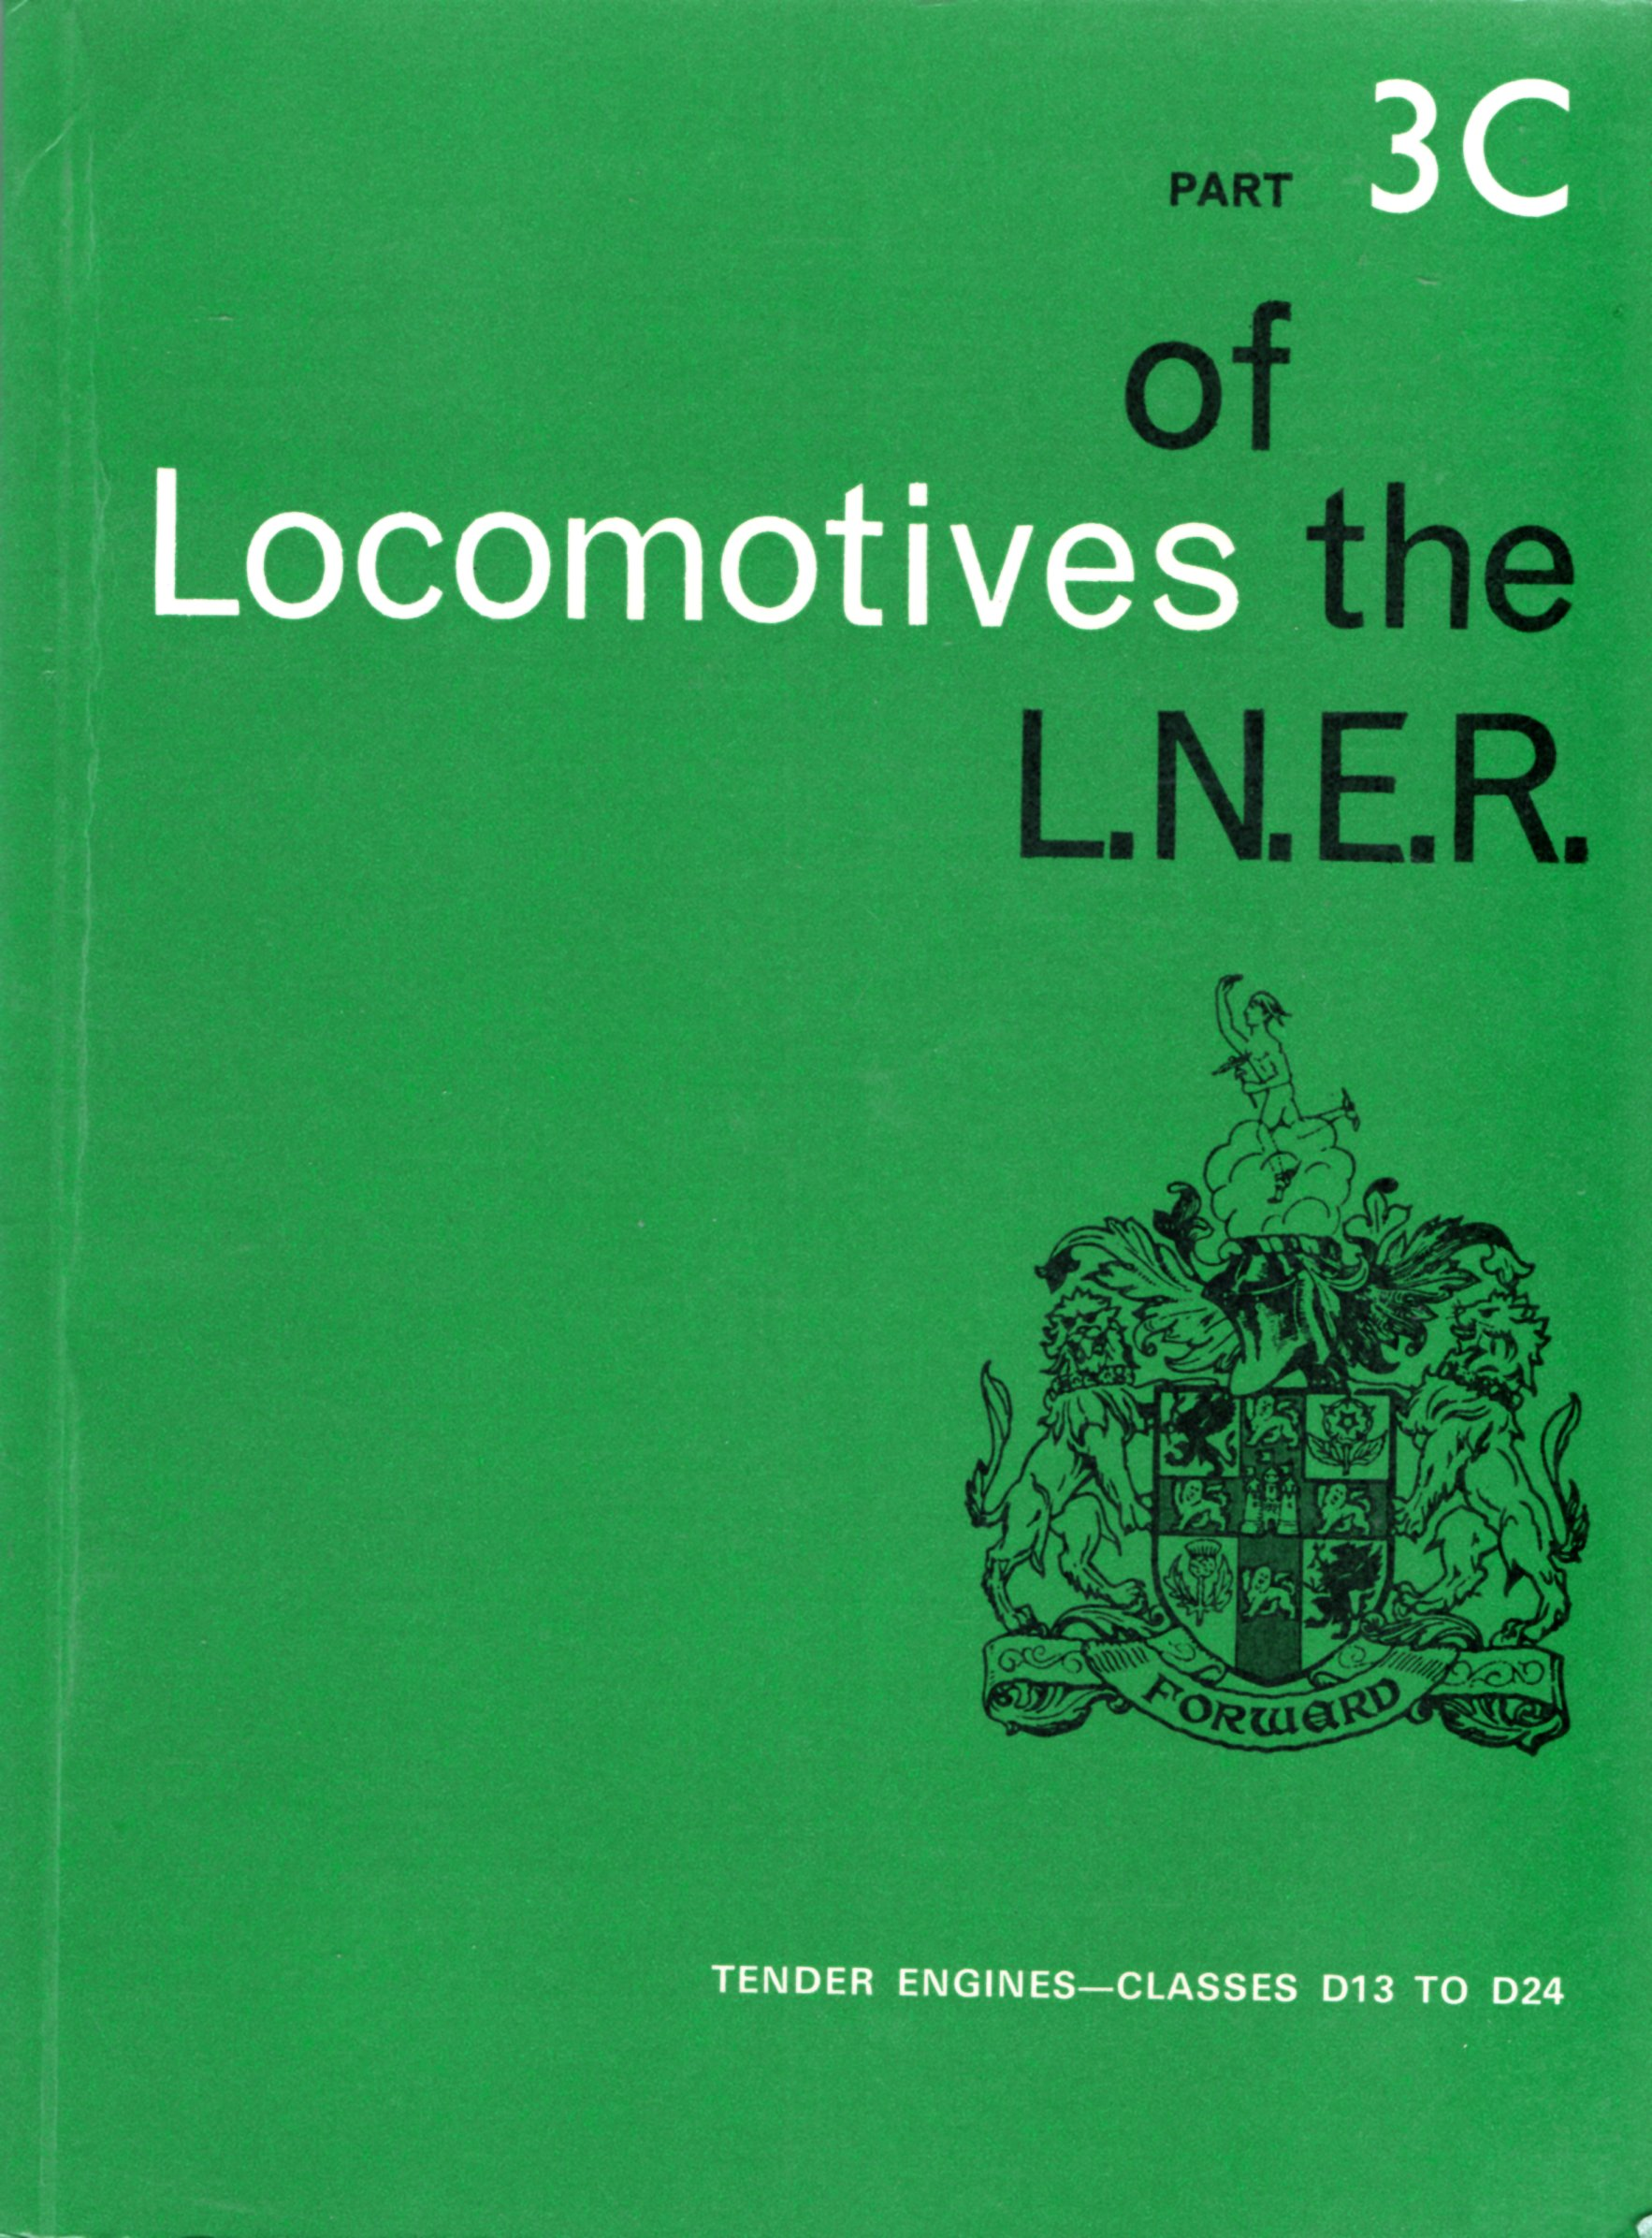 Image for Locomotives of the LN.E.R. Part 3C: Tender Engines - Classes D13 to D24